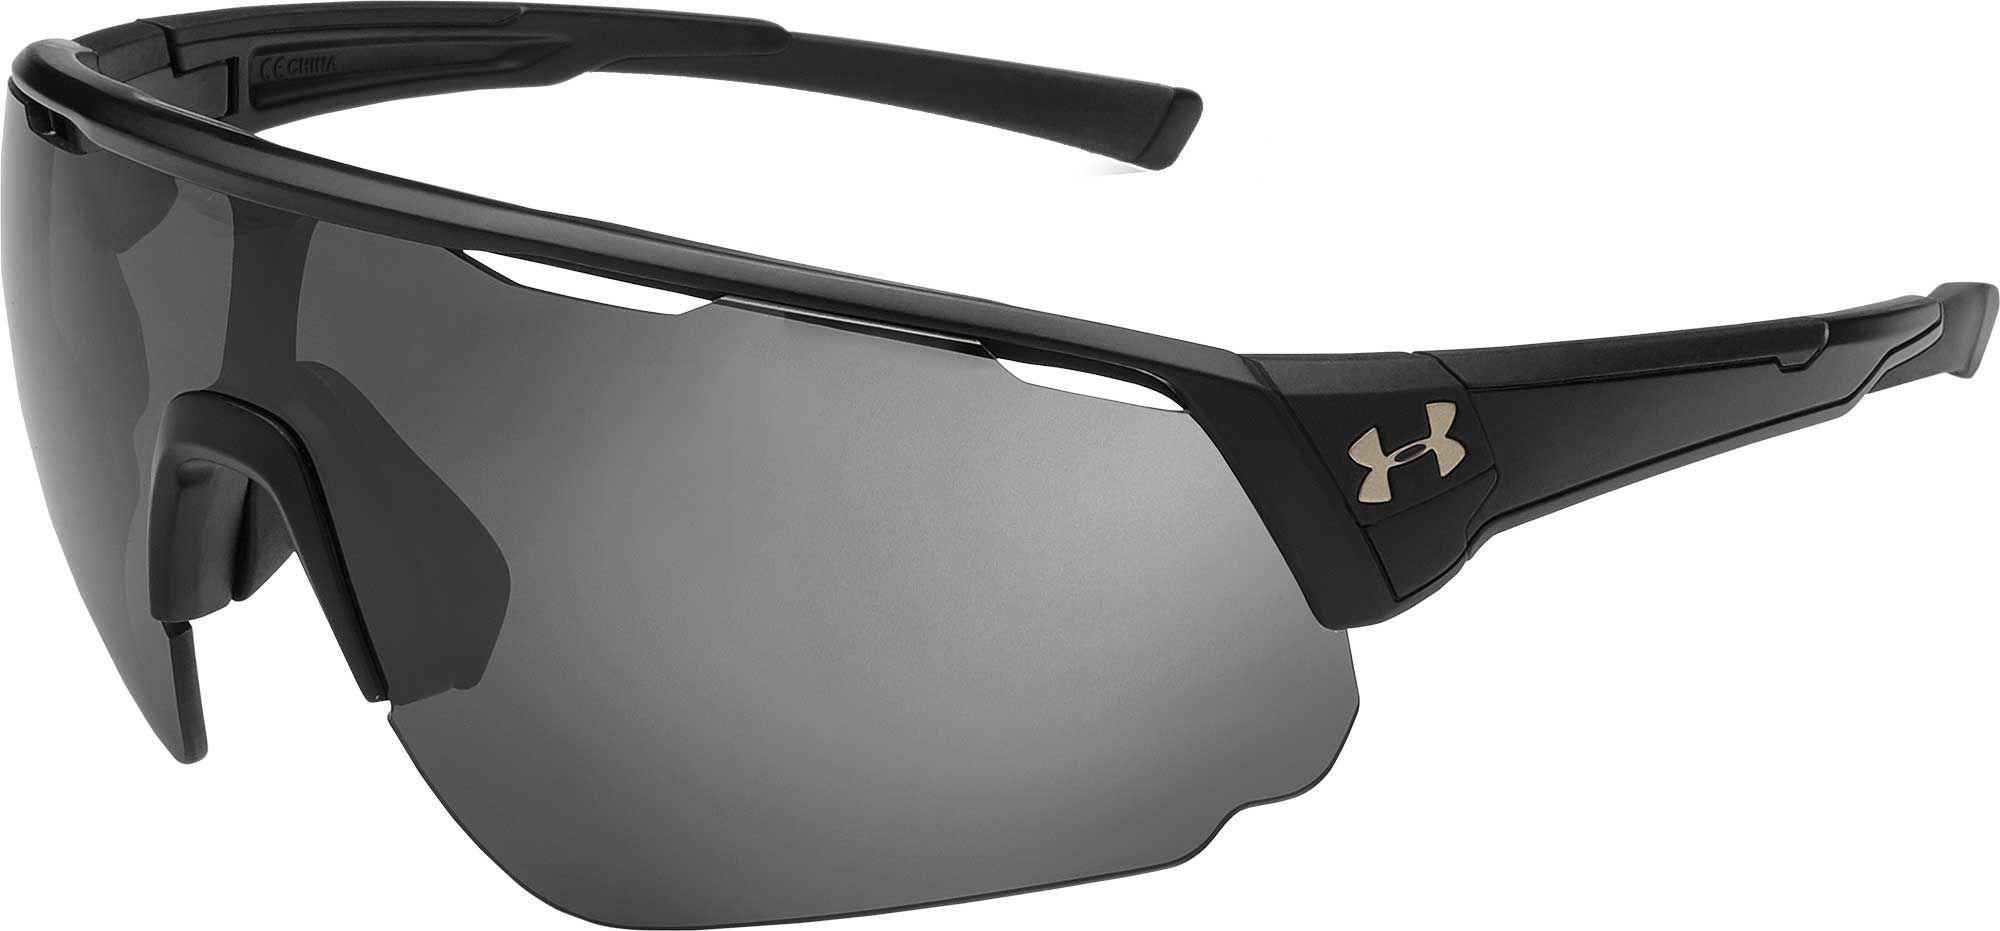 70d3af5279b Lyst - Under Armour Changeup Running Polarized Sunglasses in Black ...